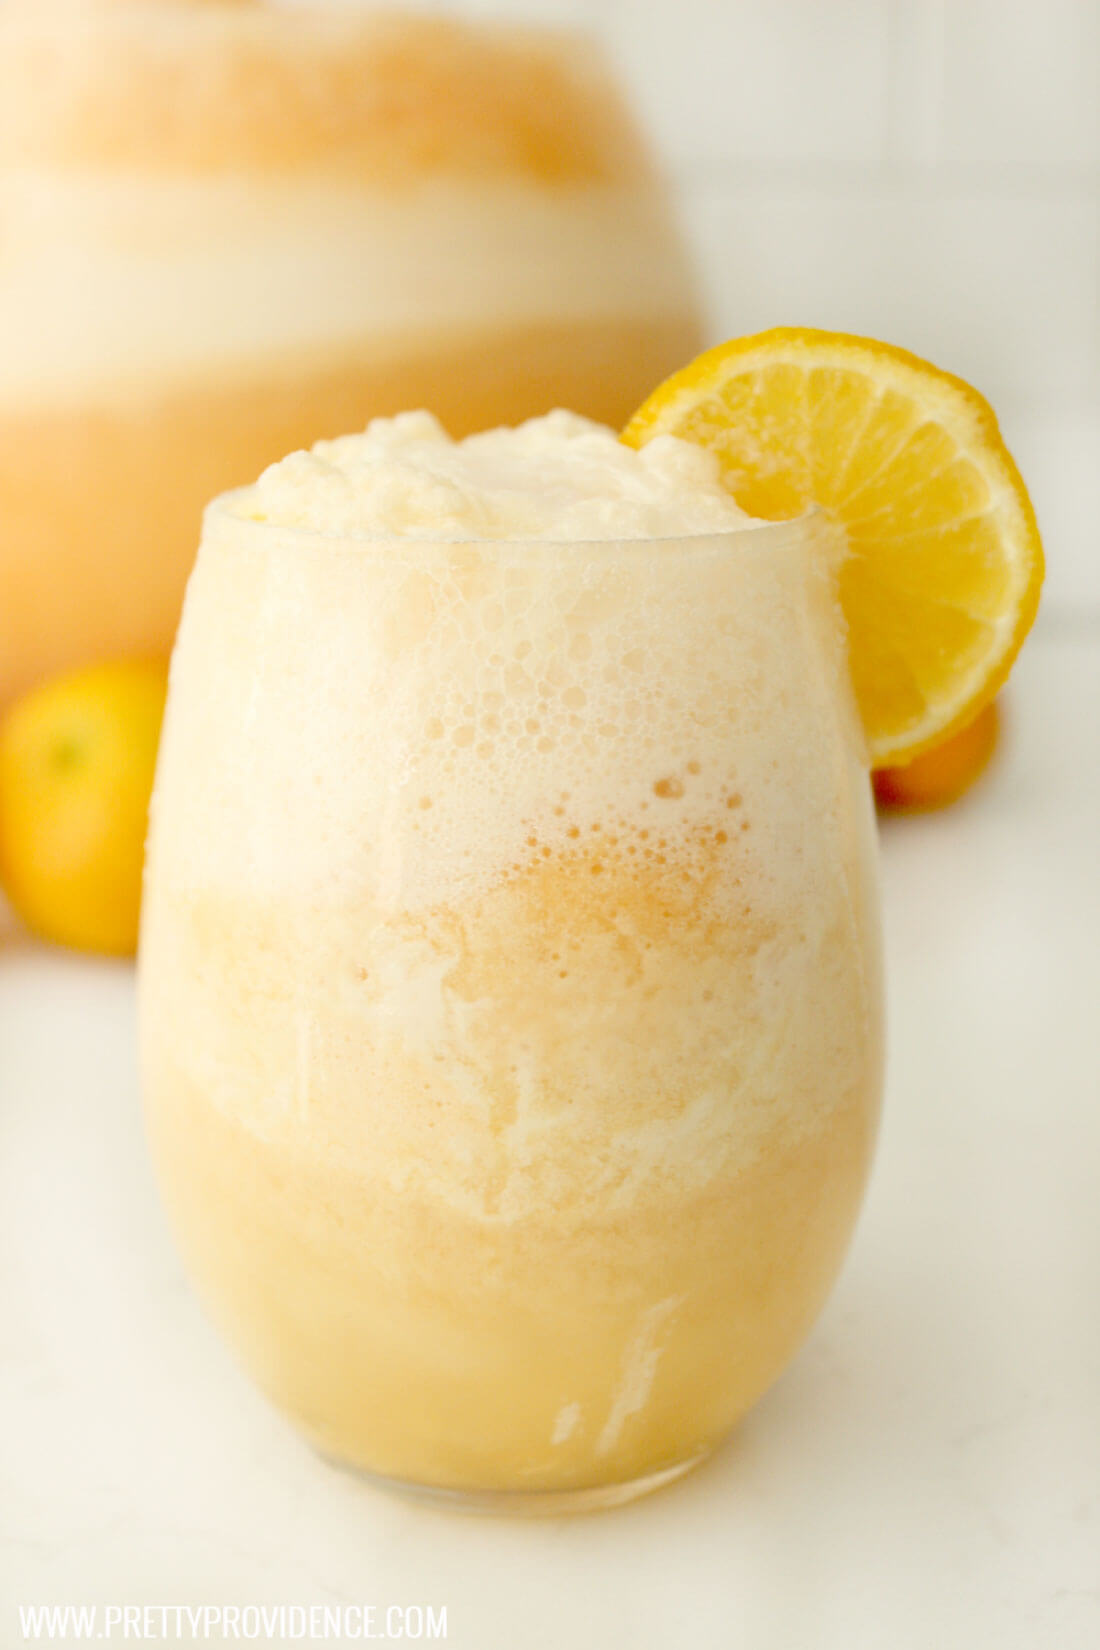 Orange Slush - a super refreshing drink recipe that is sure to hit the spot!